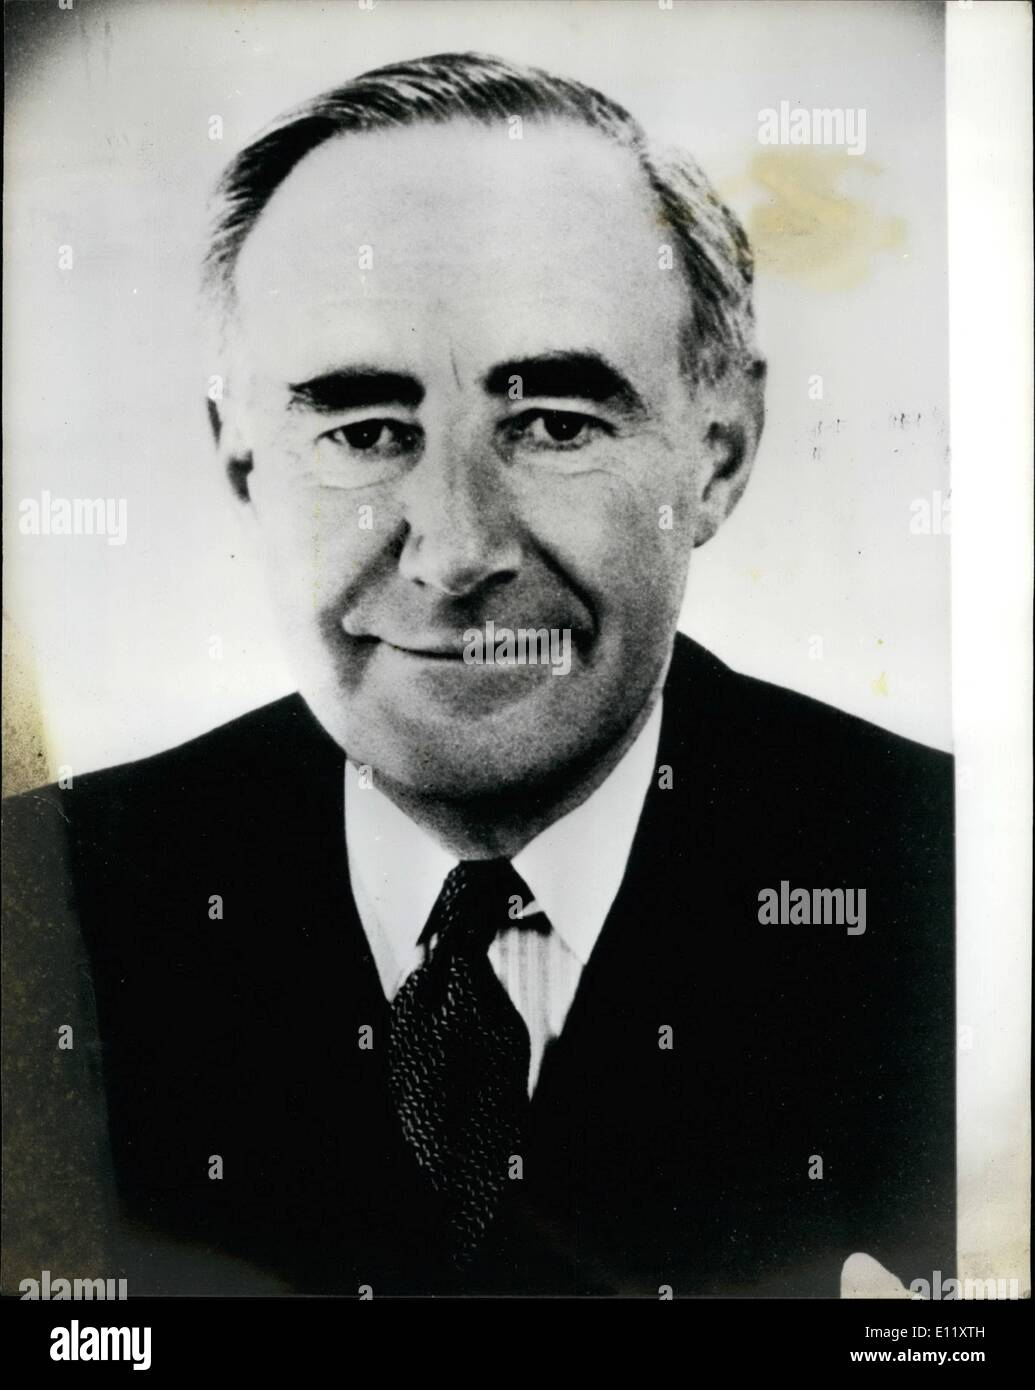 Mar. 03, 1981 - Sir Roger Hollis Former head of M15 from 1956 to 1965, is suspected of being a KGB agent, he died in 1975. The Prime Minister, Mrs. Margaret Thatcher has ordered a major investigation at the highest level into the security implications that many top people in high places have been involved with the KGB. A claim was made yesterday that Mr - Stock Image